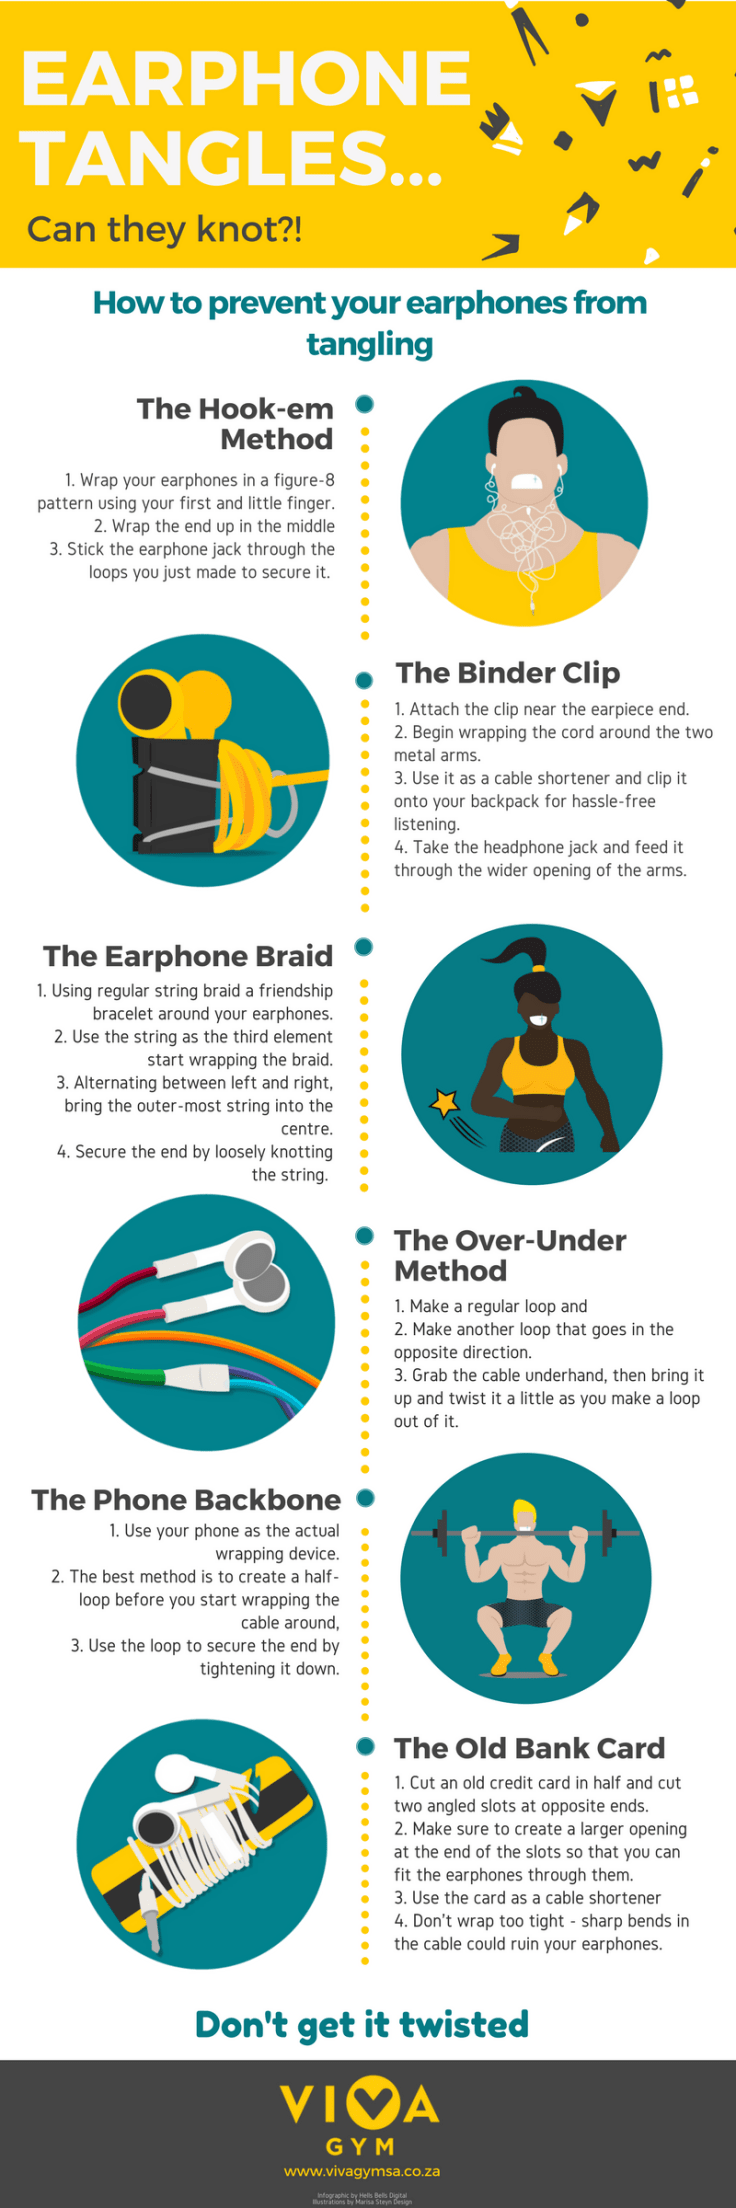 6 Hacks To Detangle Your Earphones